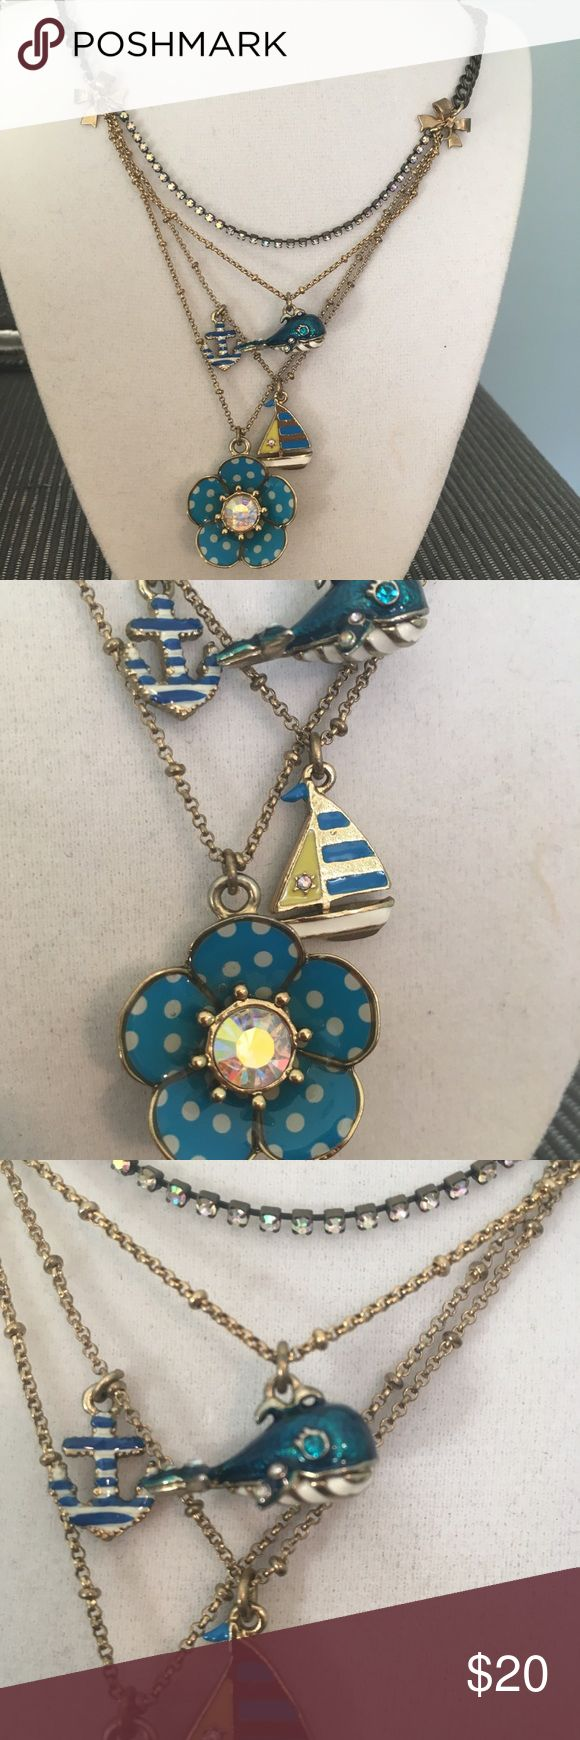 Betsy Johnson Nautical Necklace Cute piece with flowers, anchor and sailboat Betsey Johnson Jewelry Necklaces